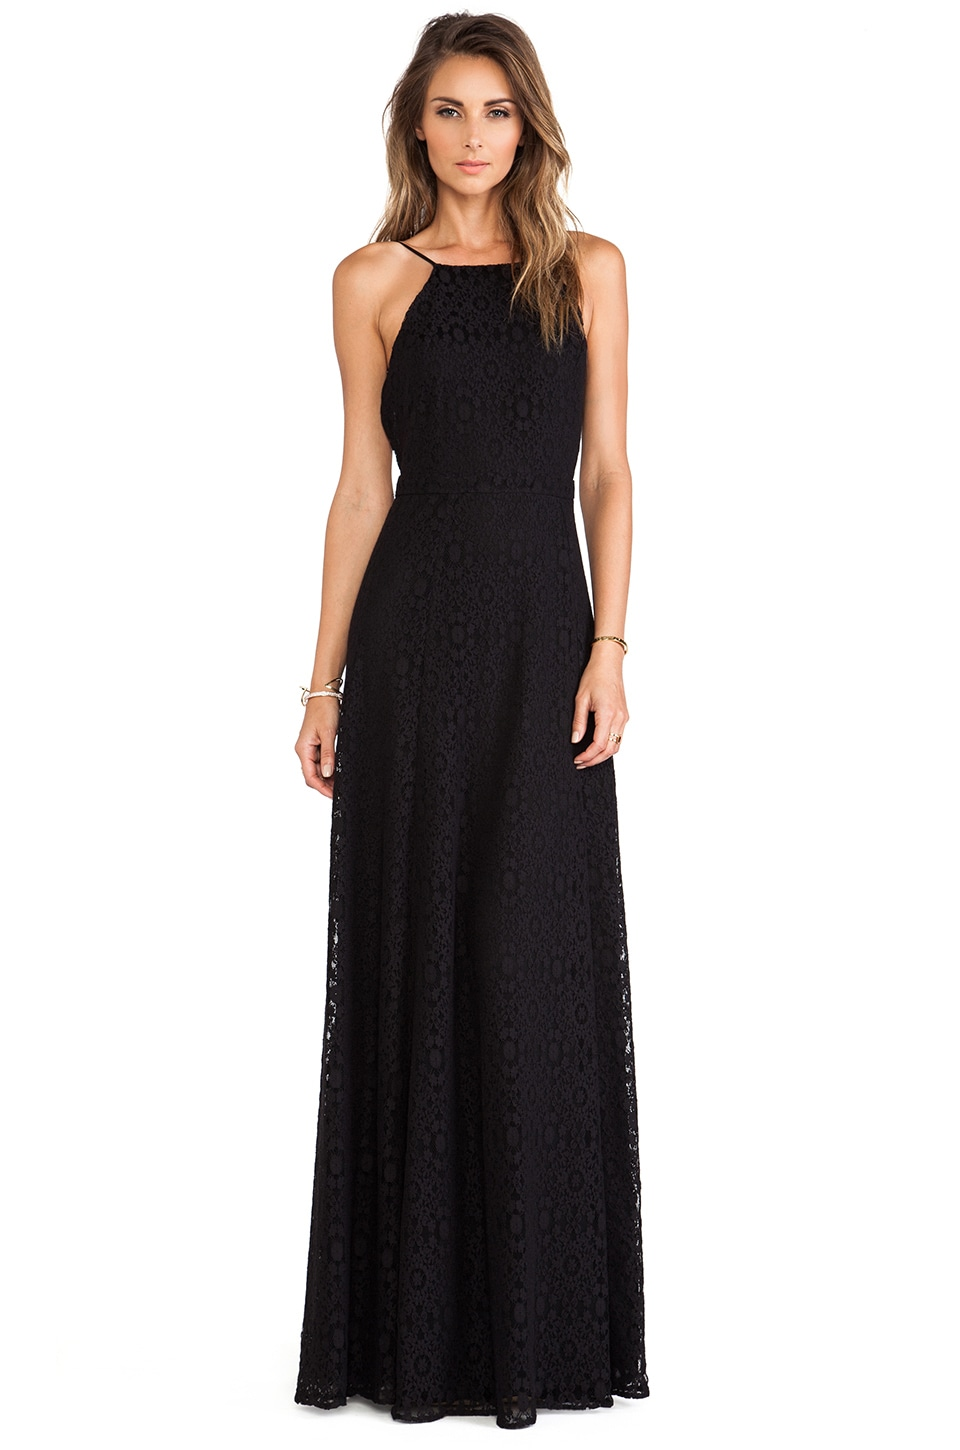 Boulee Gabriella Maxi Dress in Black Lace